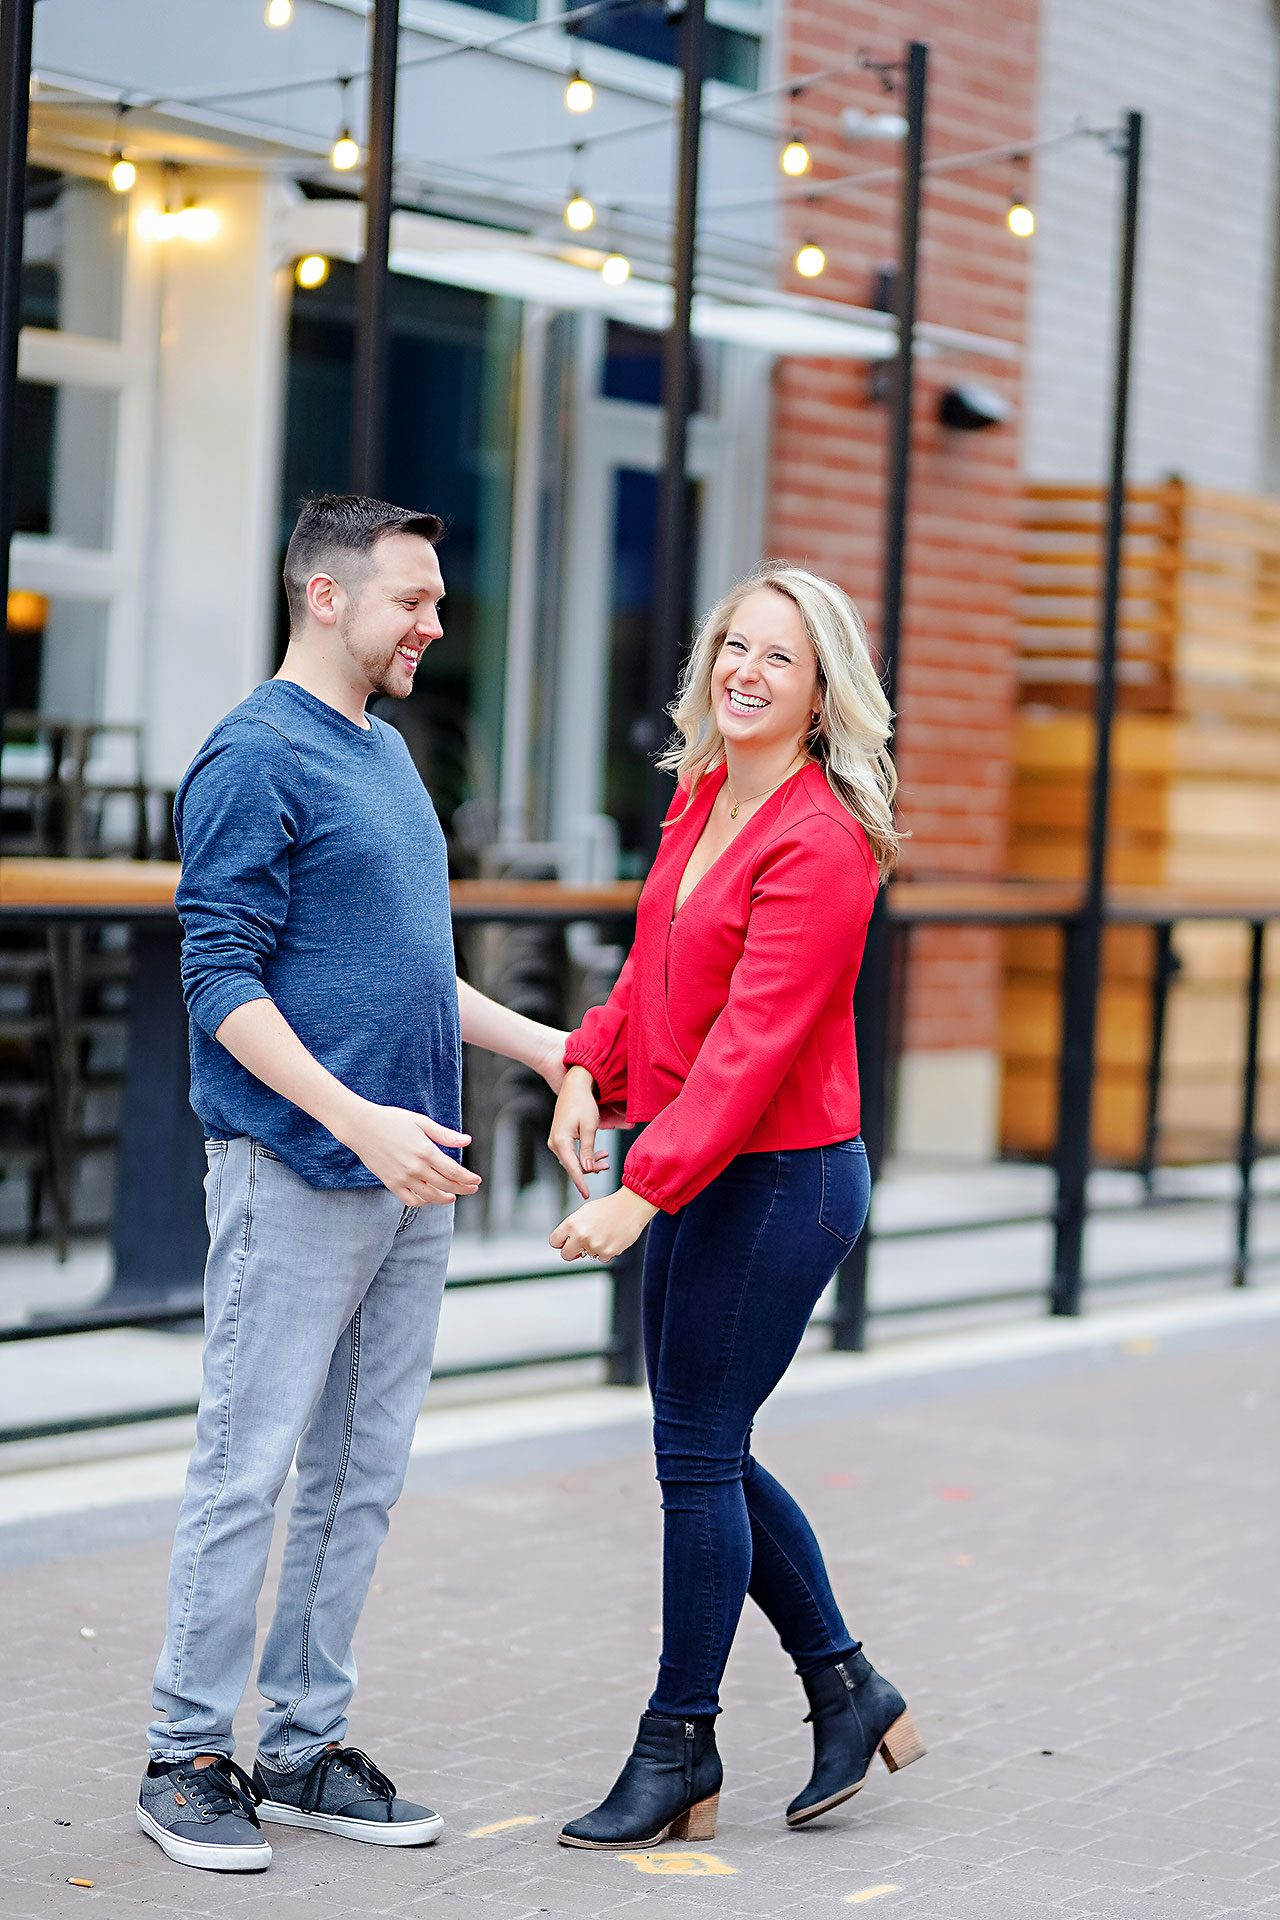 Kristen Jonny Indianapolis Downtown Engagement Session 008